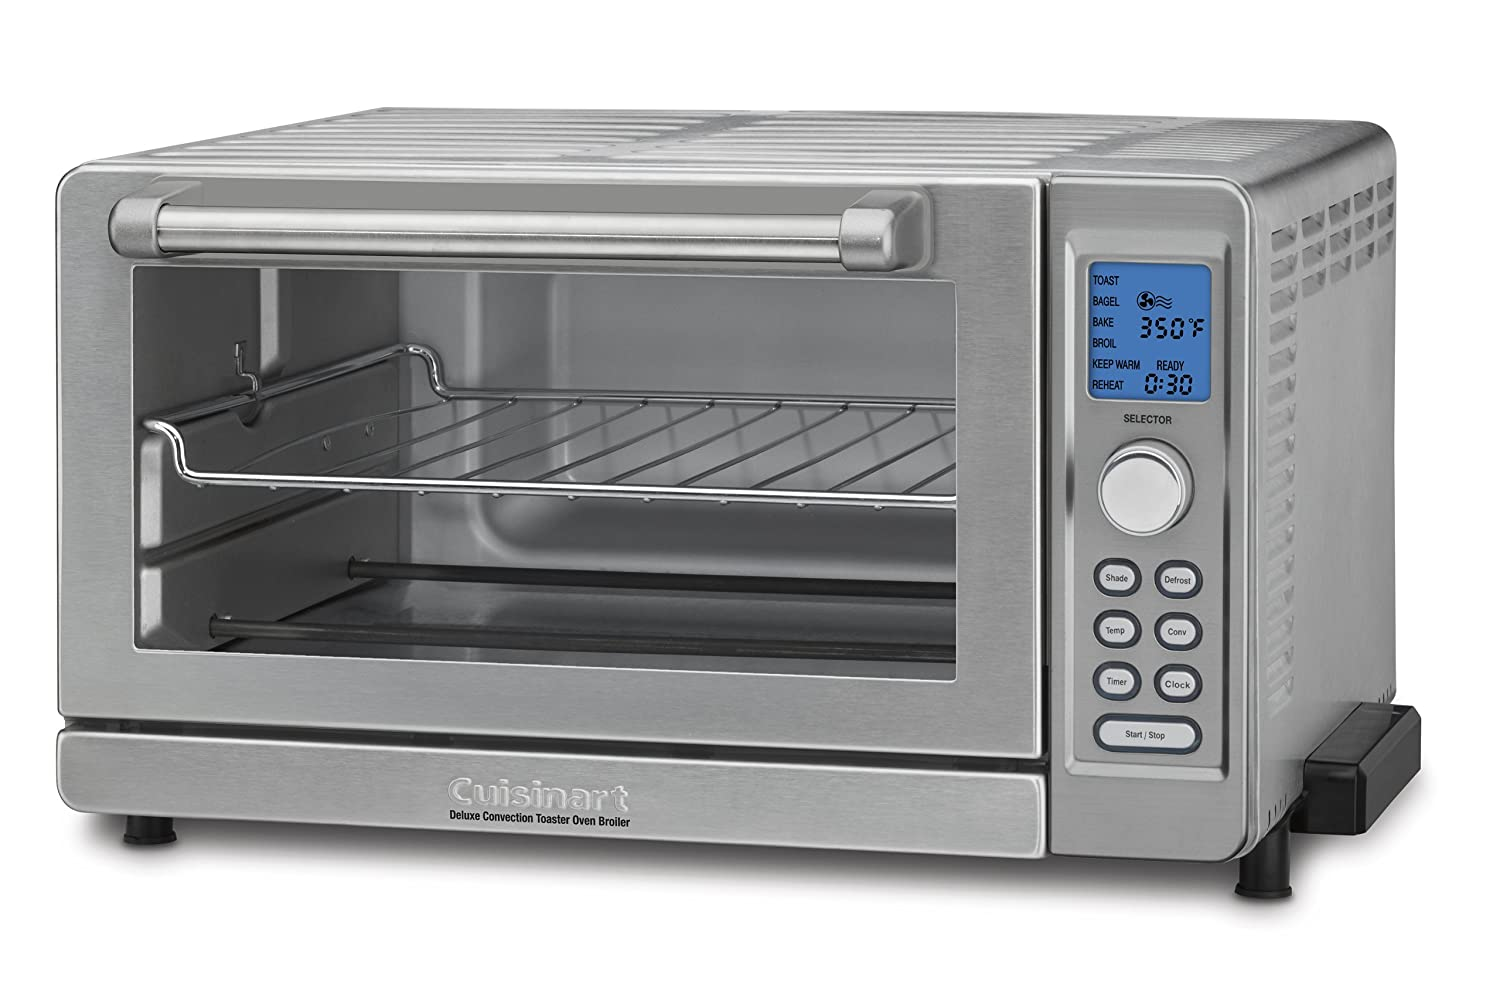 Amazon.com: Cuisinart TOB-135 Deluxe Convection Toaster Oven ...